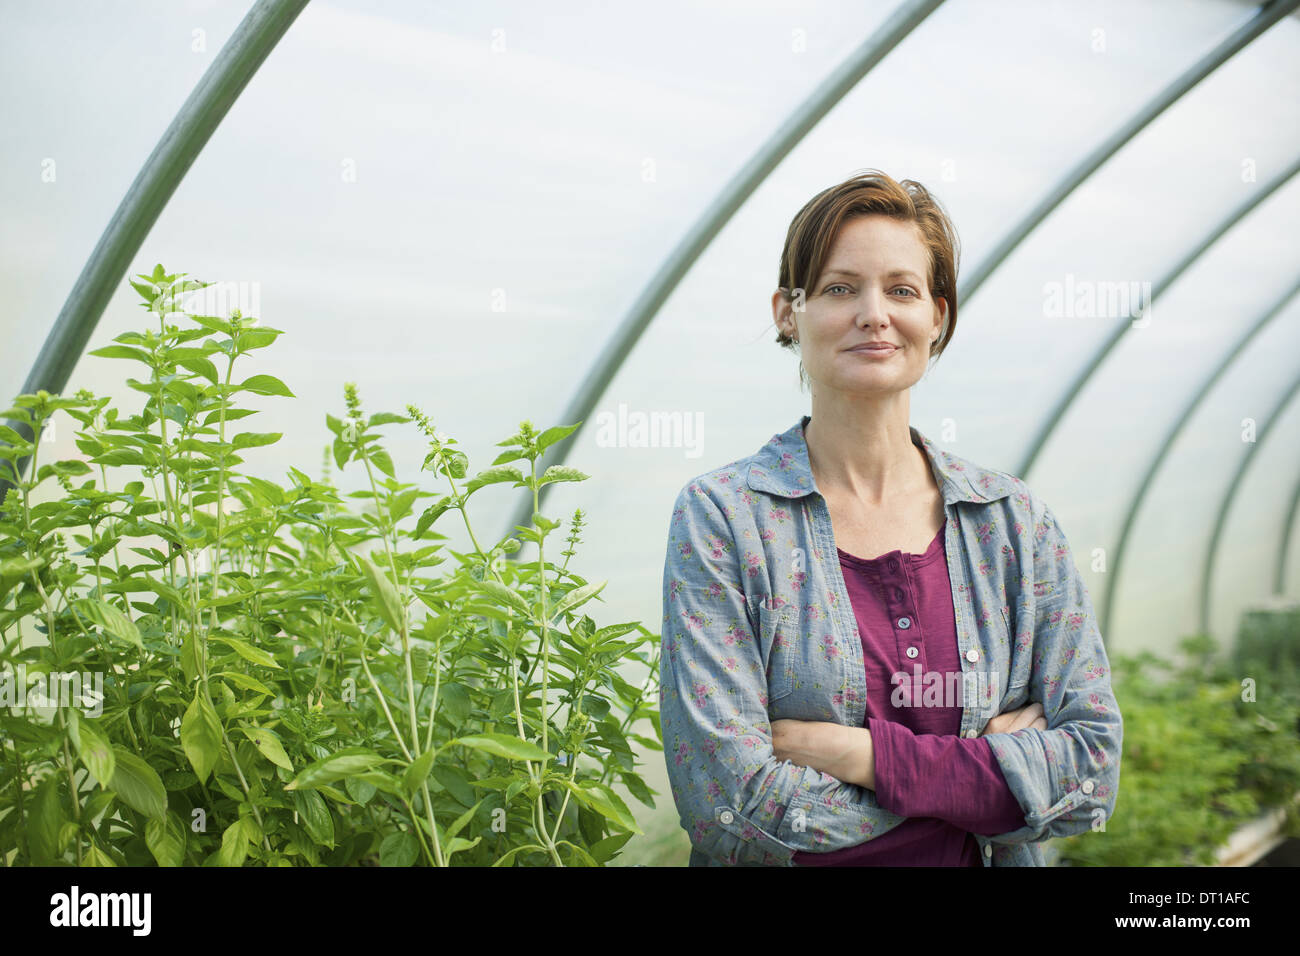 Woodstock New York USA woman working at an organic farm in the greenhouse - Stock Image